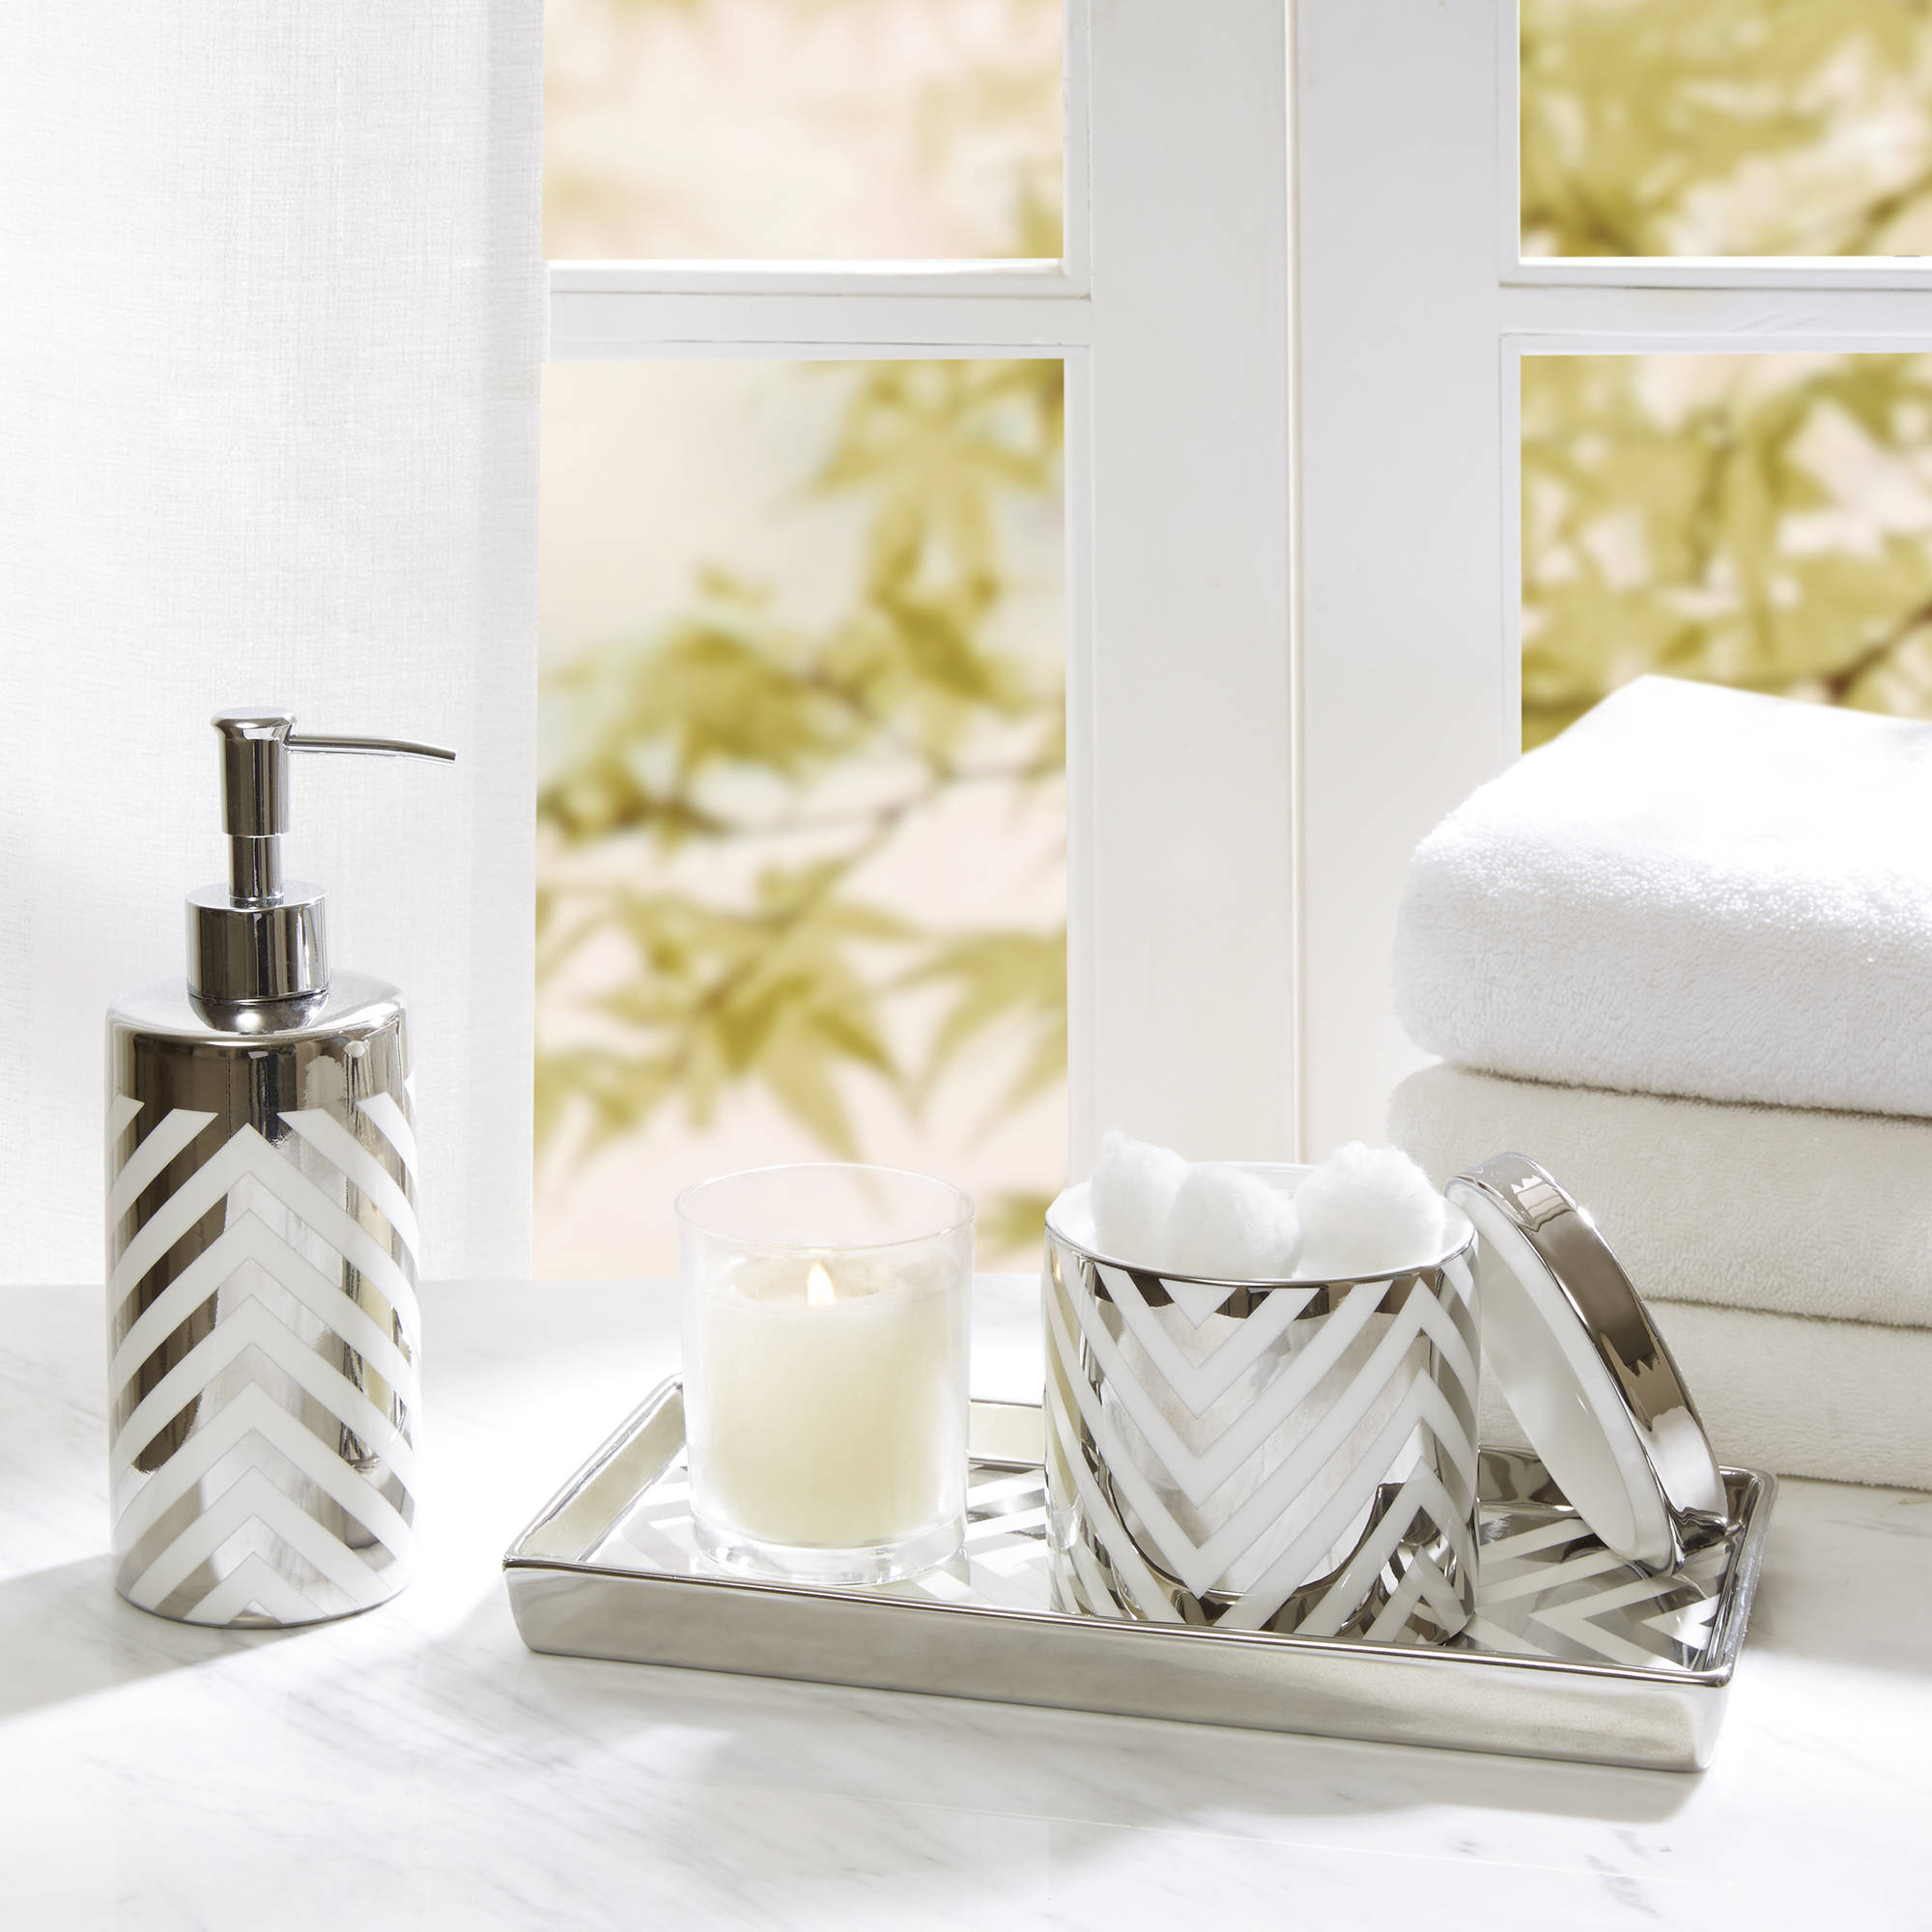 Home Essence Silver Chevron Ceramic Bath Accessory Set by E&E Co.